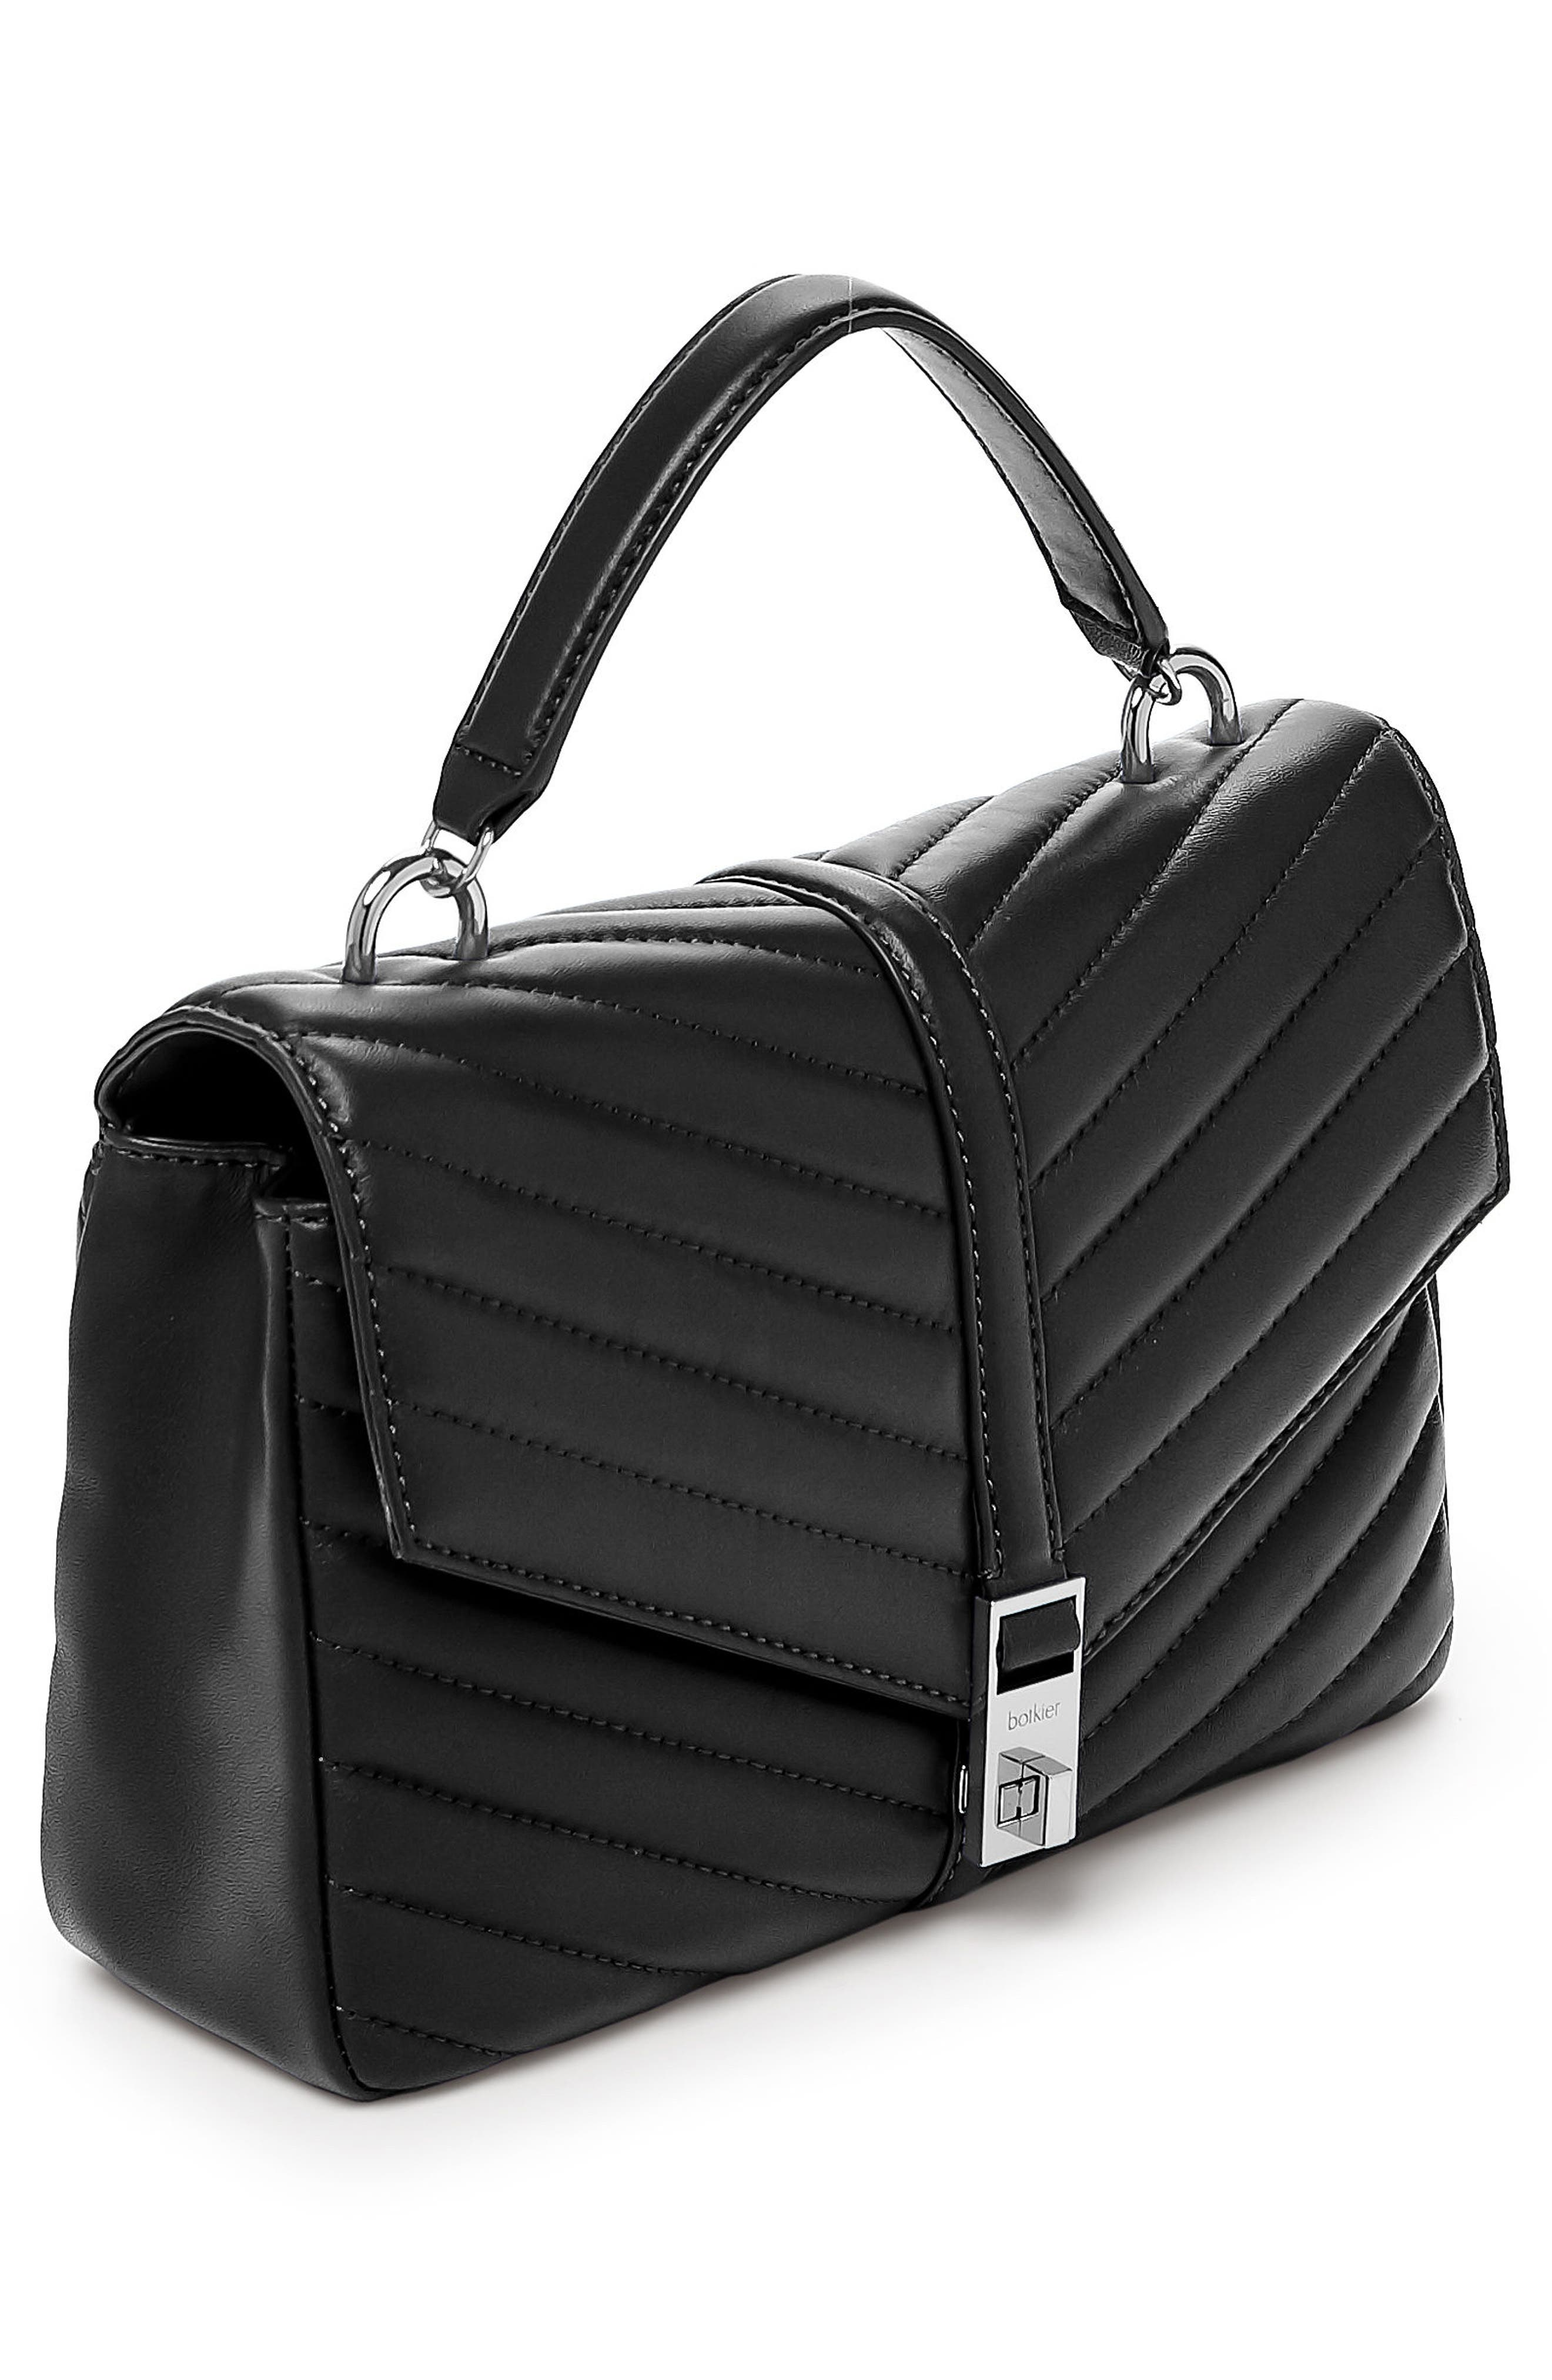 Dakota Quilted Leather Top Handle Bag,                             Alternate thumbnail 3, color,                             BLACK